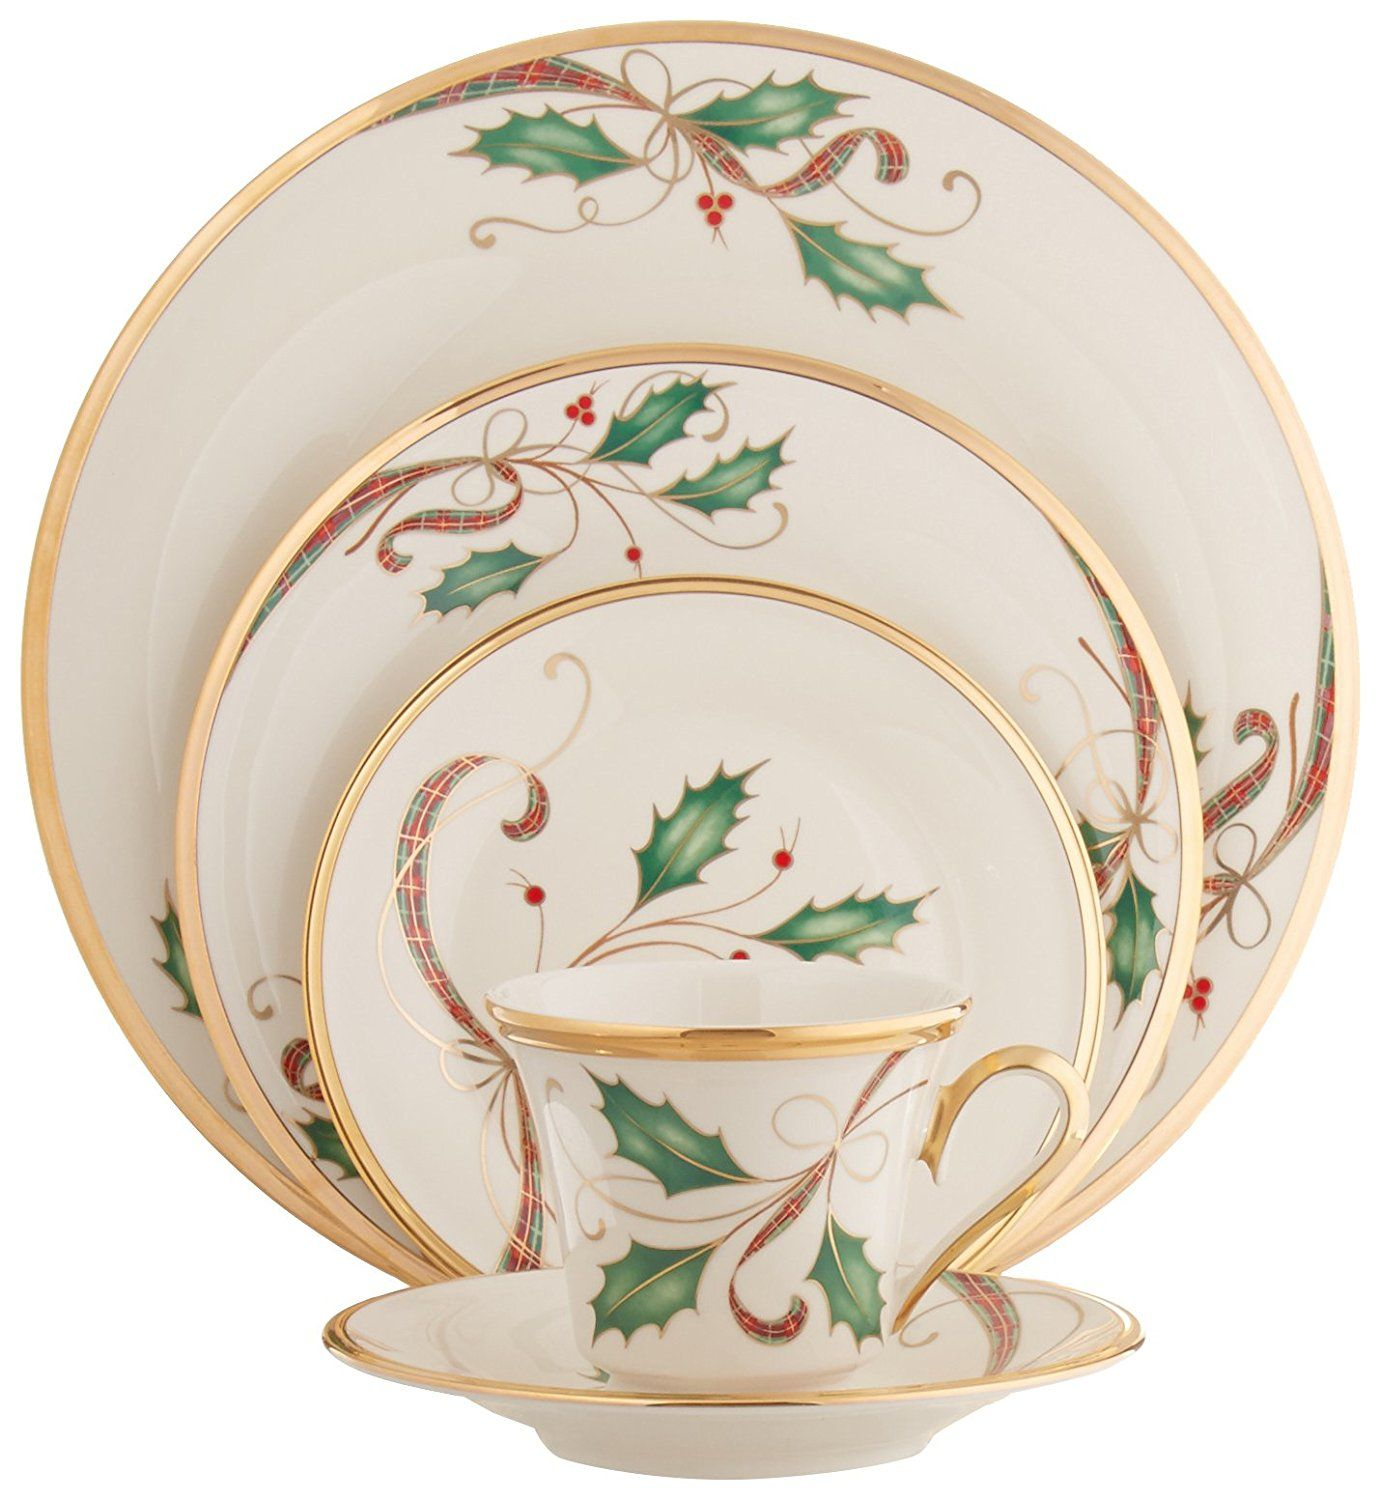 Amazon Com Lenox Holiday Nouveau 5 Piece Place Setting Service For 1 Kitchen Amp Dining Christmas Dishes Gold Place Setting Holiday Dinnerware